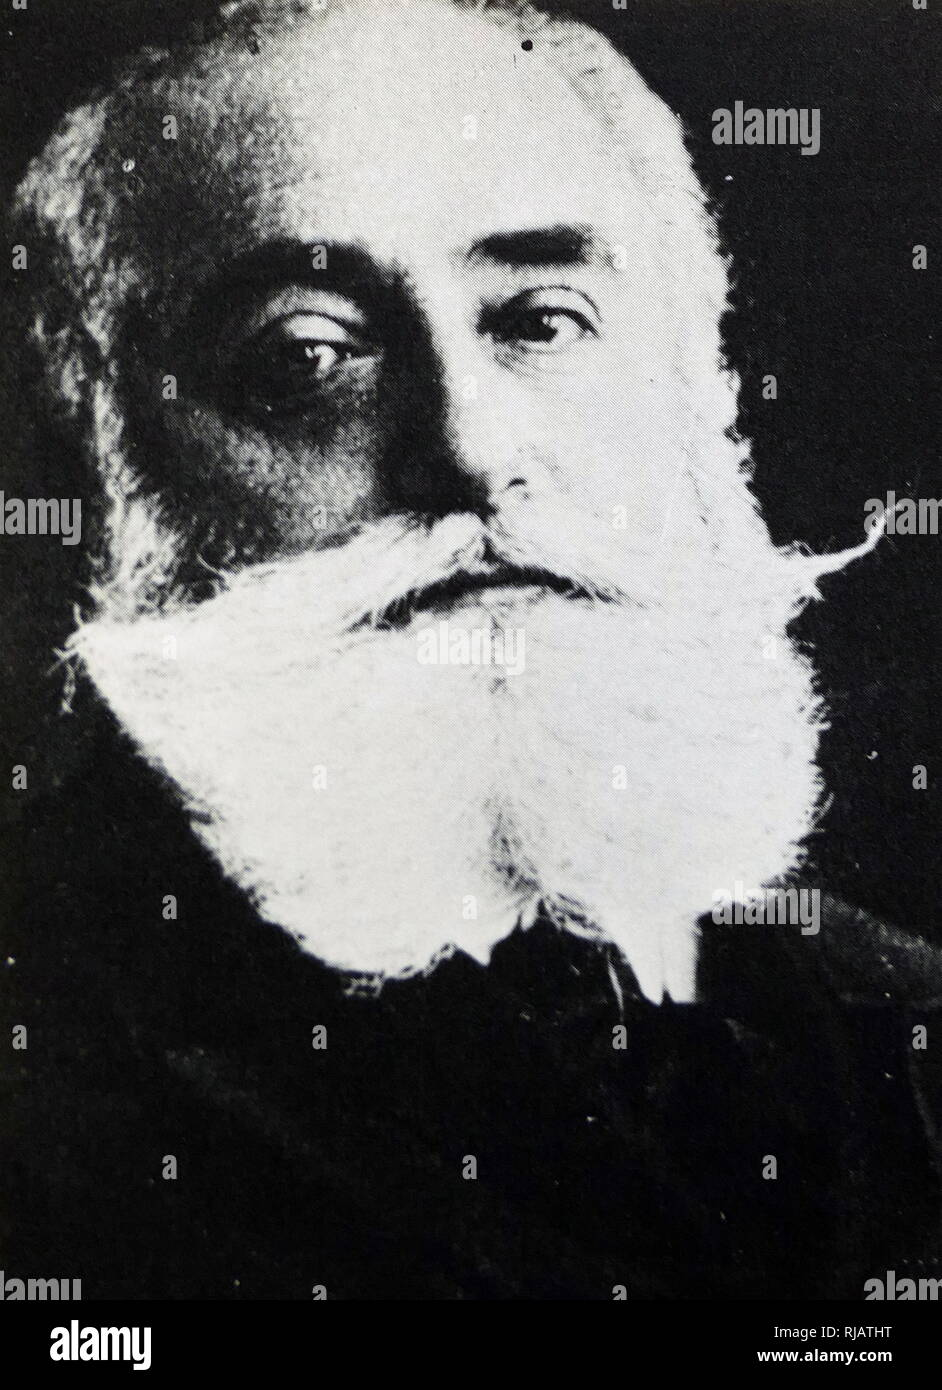 Max Simon Nordau (1849 - 1923), Zionist leader, physician, author, and social critic. co-founder of the World Zionist Organization together with Theodor Herzl - Stock Image